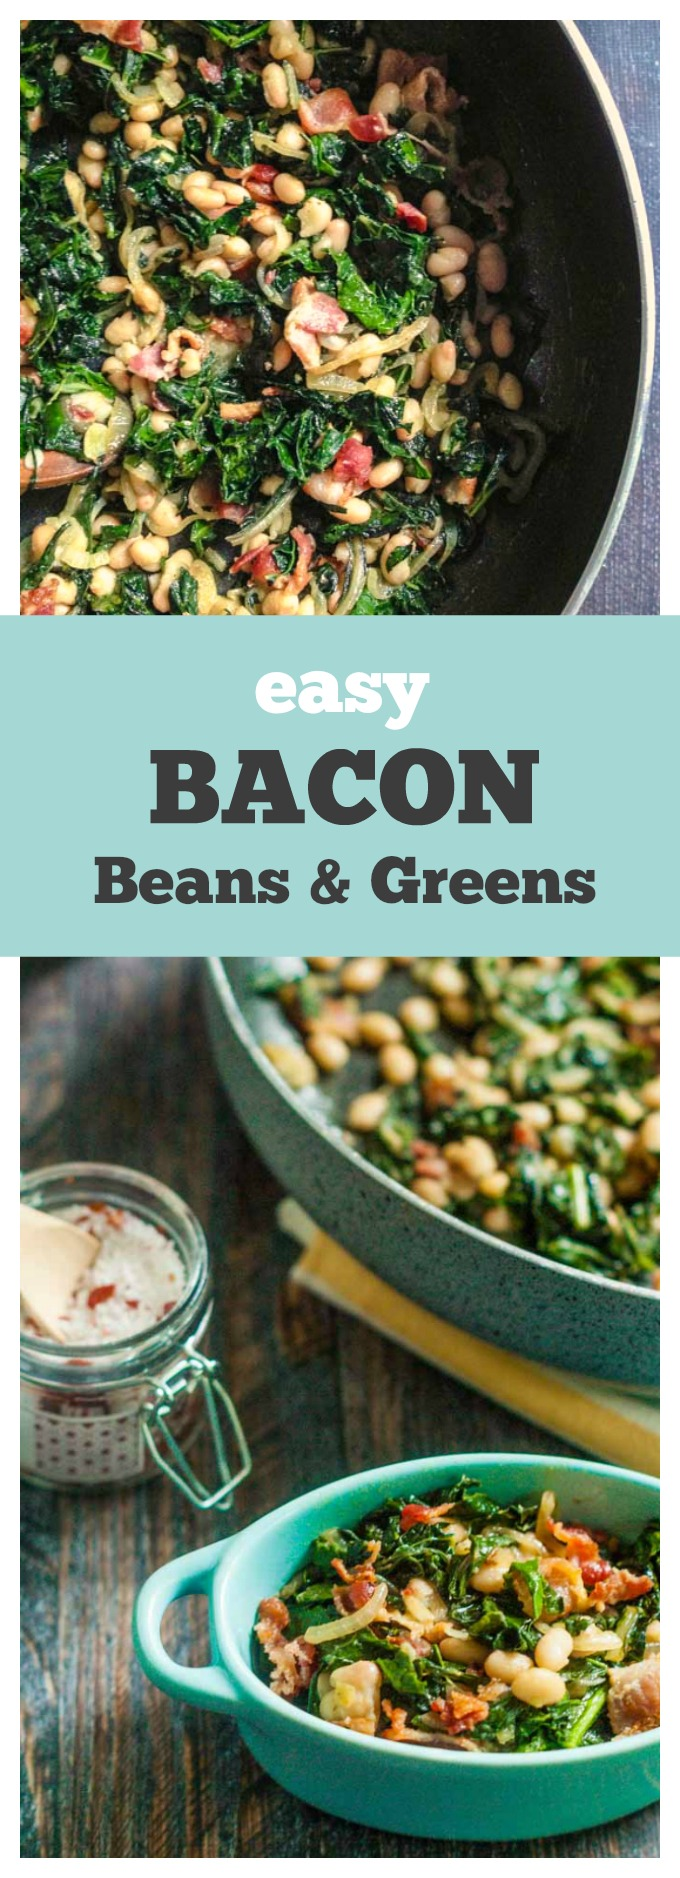 easy-bacon-beans-greens-pin